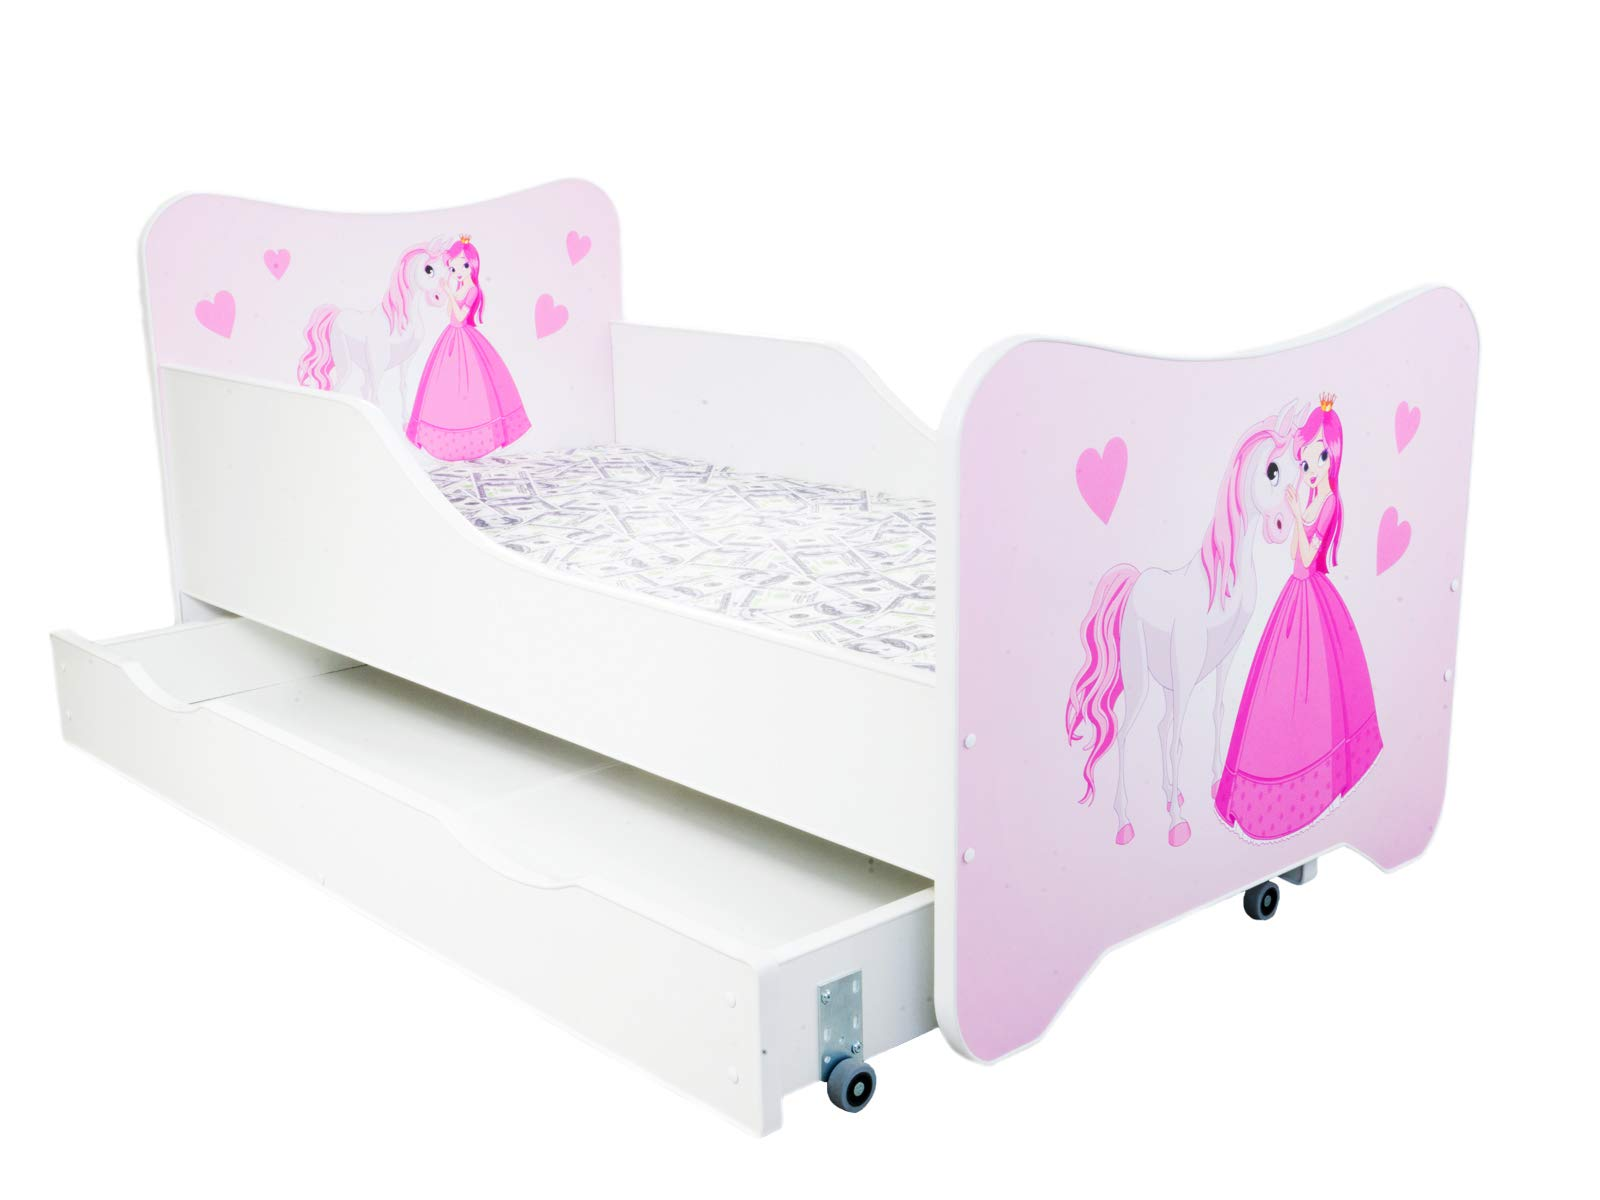 "Toddler Children Kids Bed Including Mattress + Drawer 160x80!! 30 Designs!!! (Princess and Horse) Topbeds TODDLER BED - perfect transition from cot to the first ""big"" bed HIGH QUALITY - made in EU. Quality controlled at each stage of production. Made out of high quality MDF which makes bed sturdy and lightweight at the same time. Wooden sprung slats included. SAFETY - low from the ground construction makes it easy for kids to climb in and out. Edges covered with soft PCV. Higher sides of the bed protect your kid from falling off. Furniture board finished with a non-toxic coating. Holds up to 150 kg. 2"